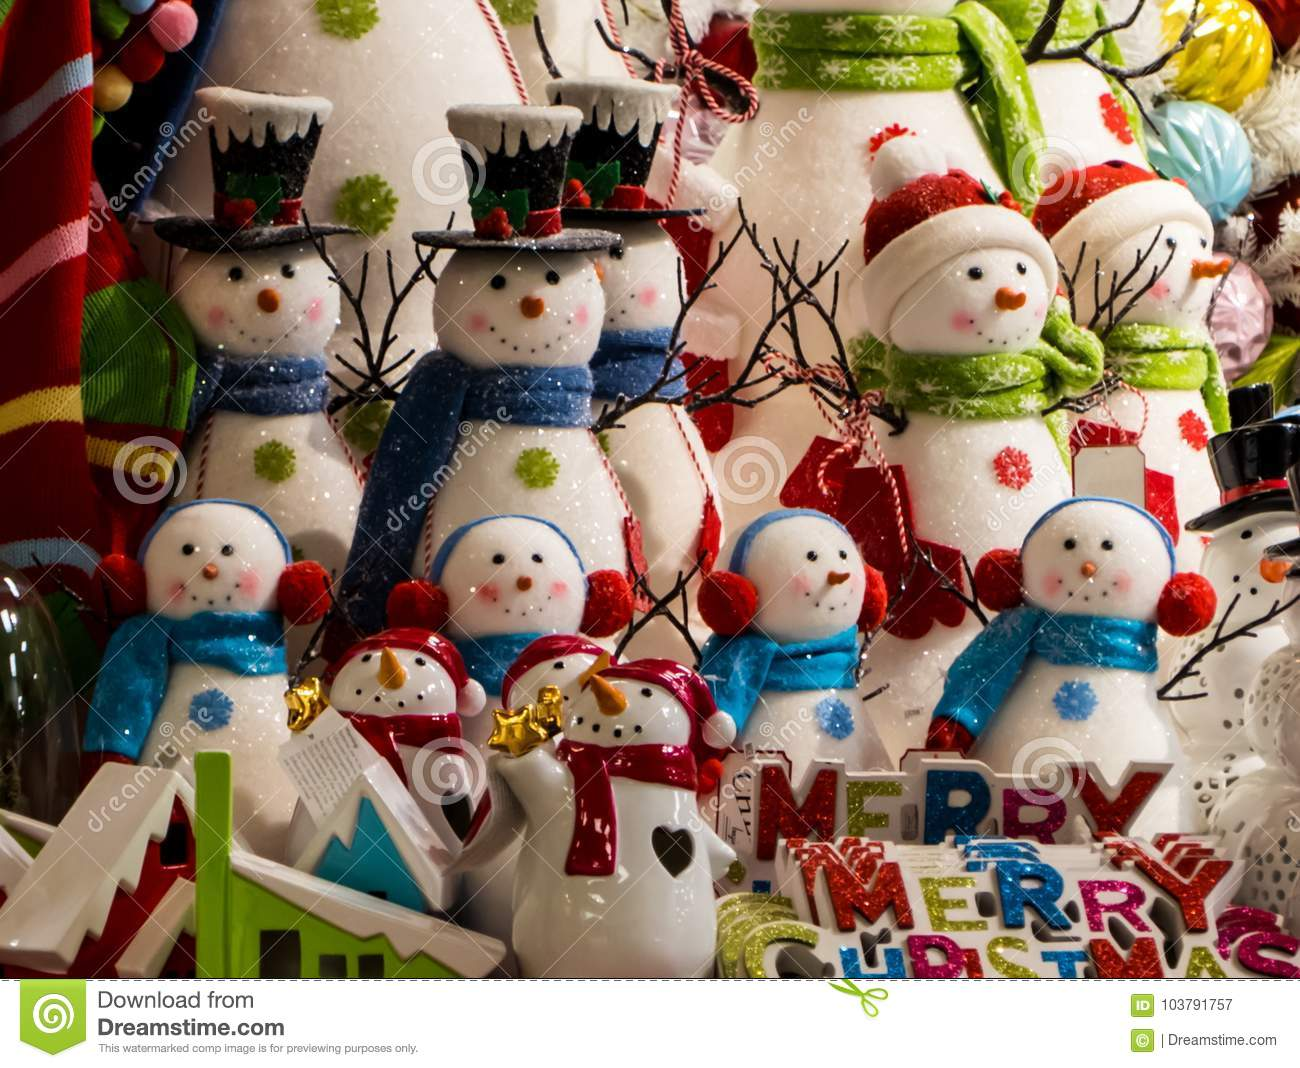 a display of snowmen displayed like christmas carolers